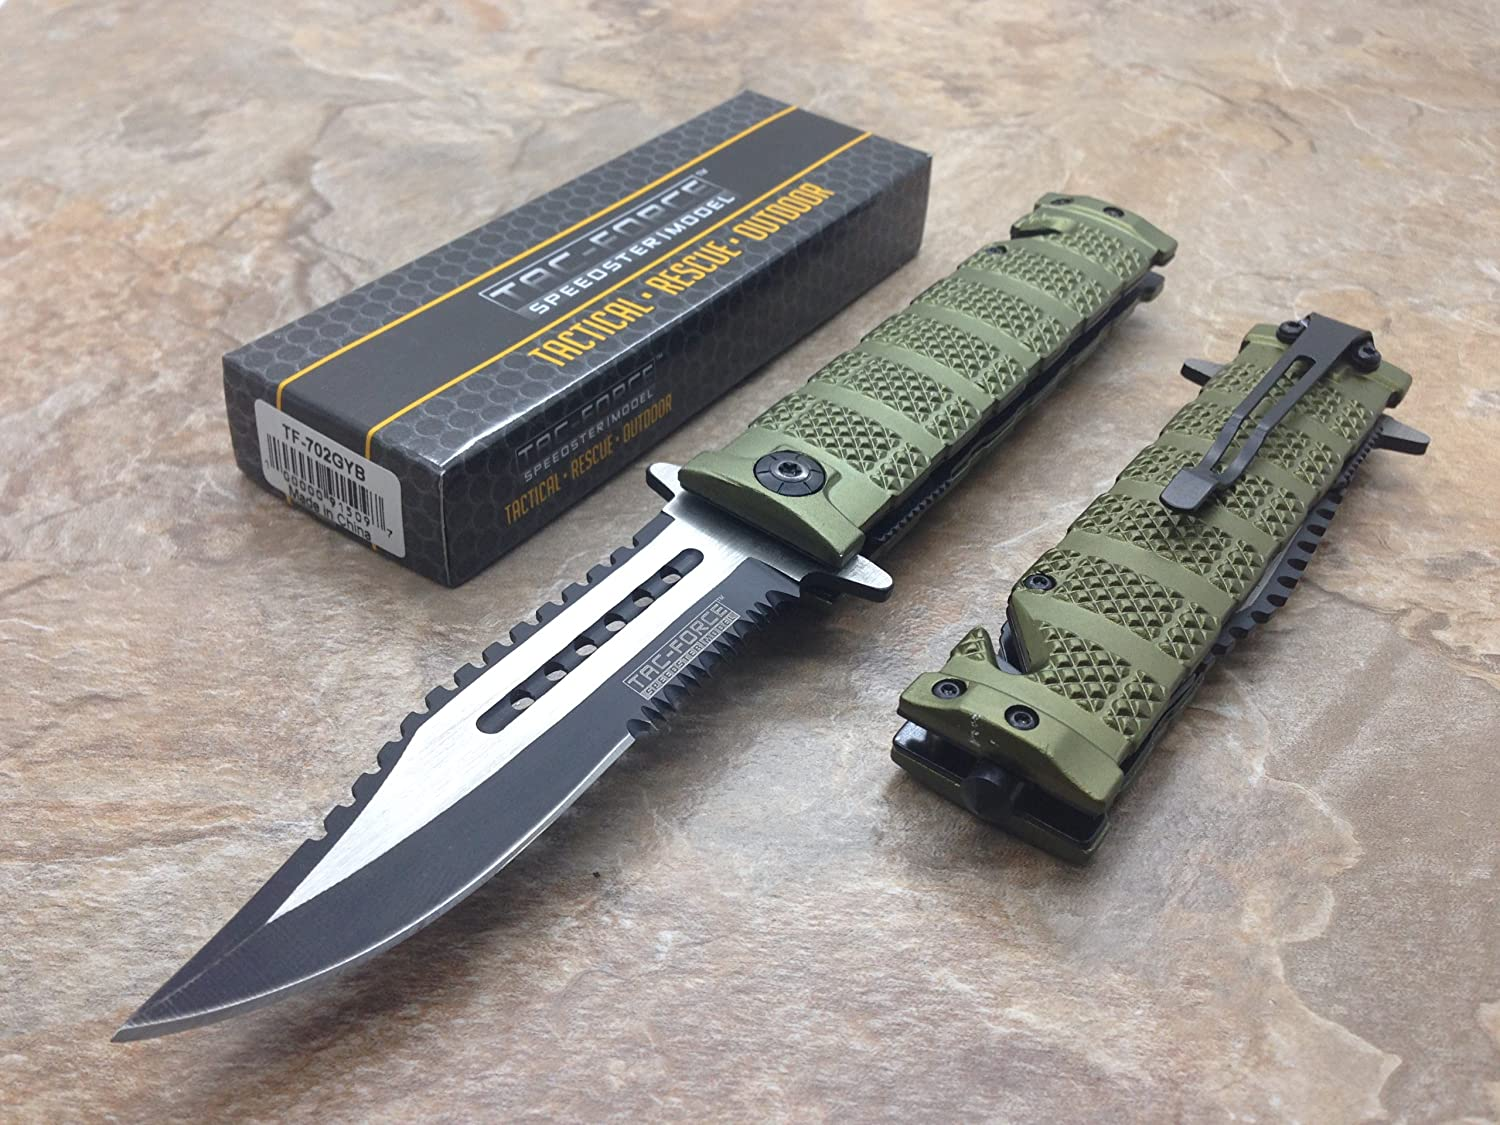 This is an image of the TAC Force Assisted Pocket Sawbaw Bowie Knife with silver and black blade color combination.